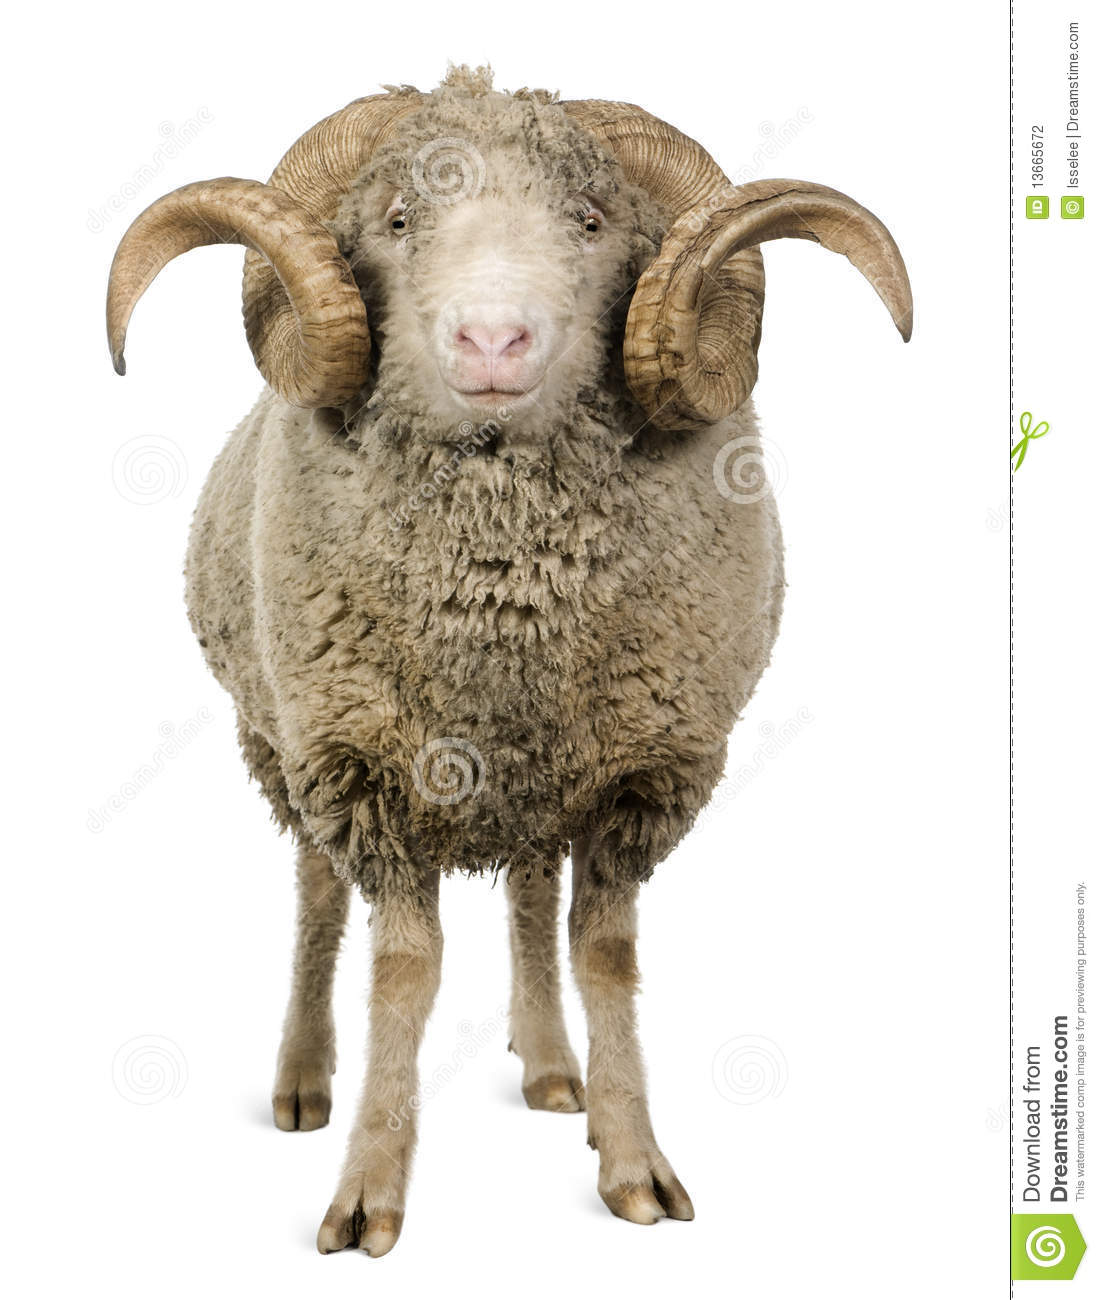 Arles Merino sheep, ram, 5 years old